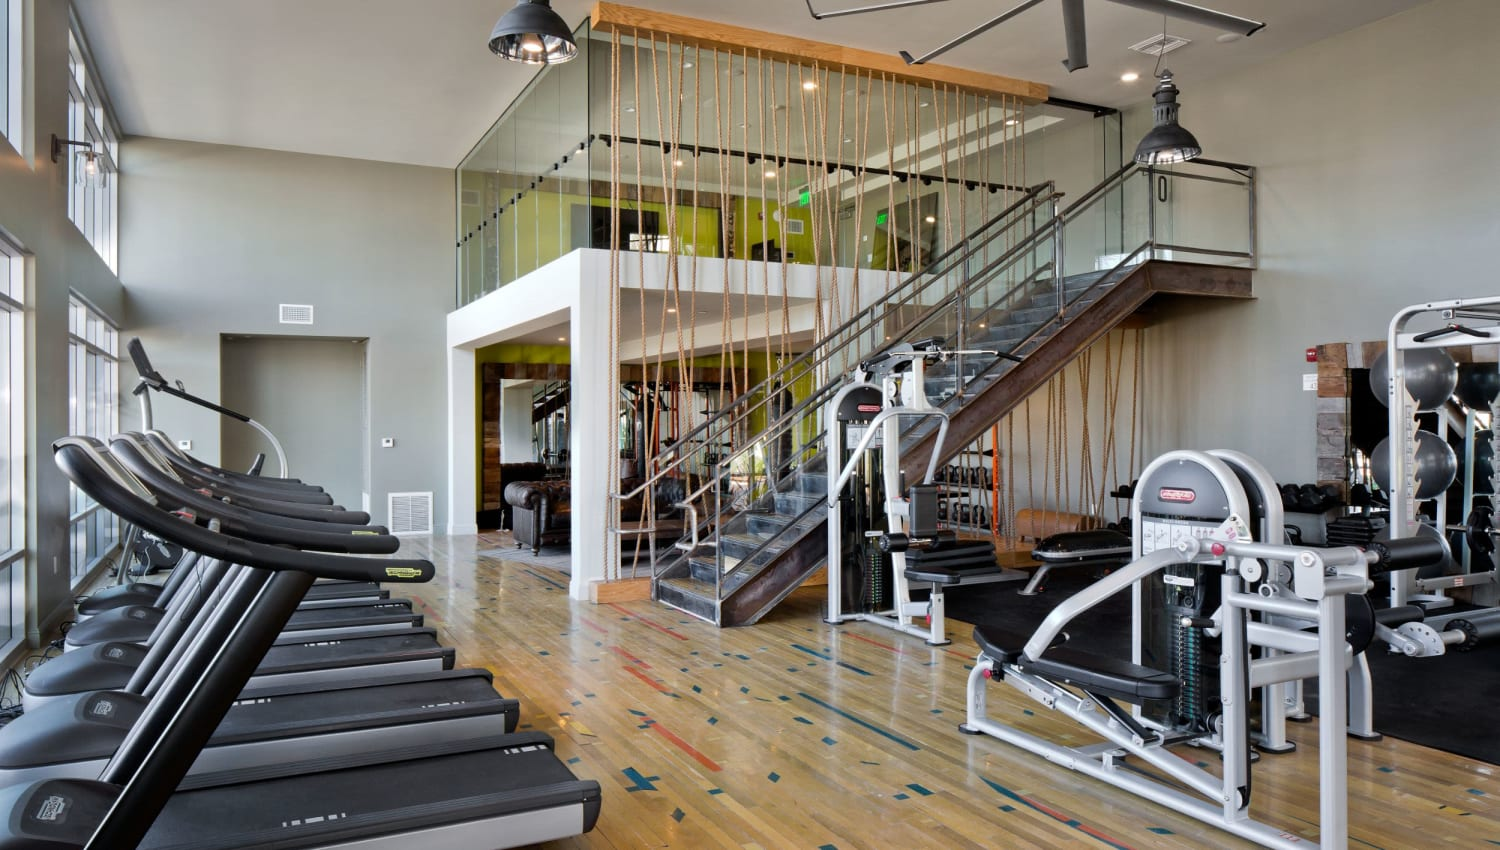 Fitness club equipped with state-of-the-art cardio machines at Olympus Corsair in San Diego, California